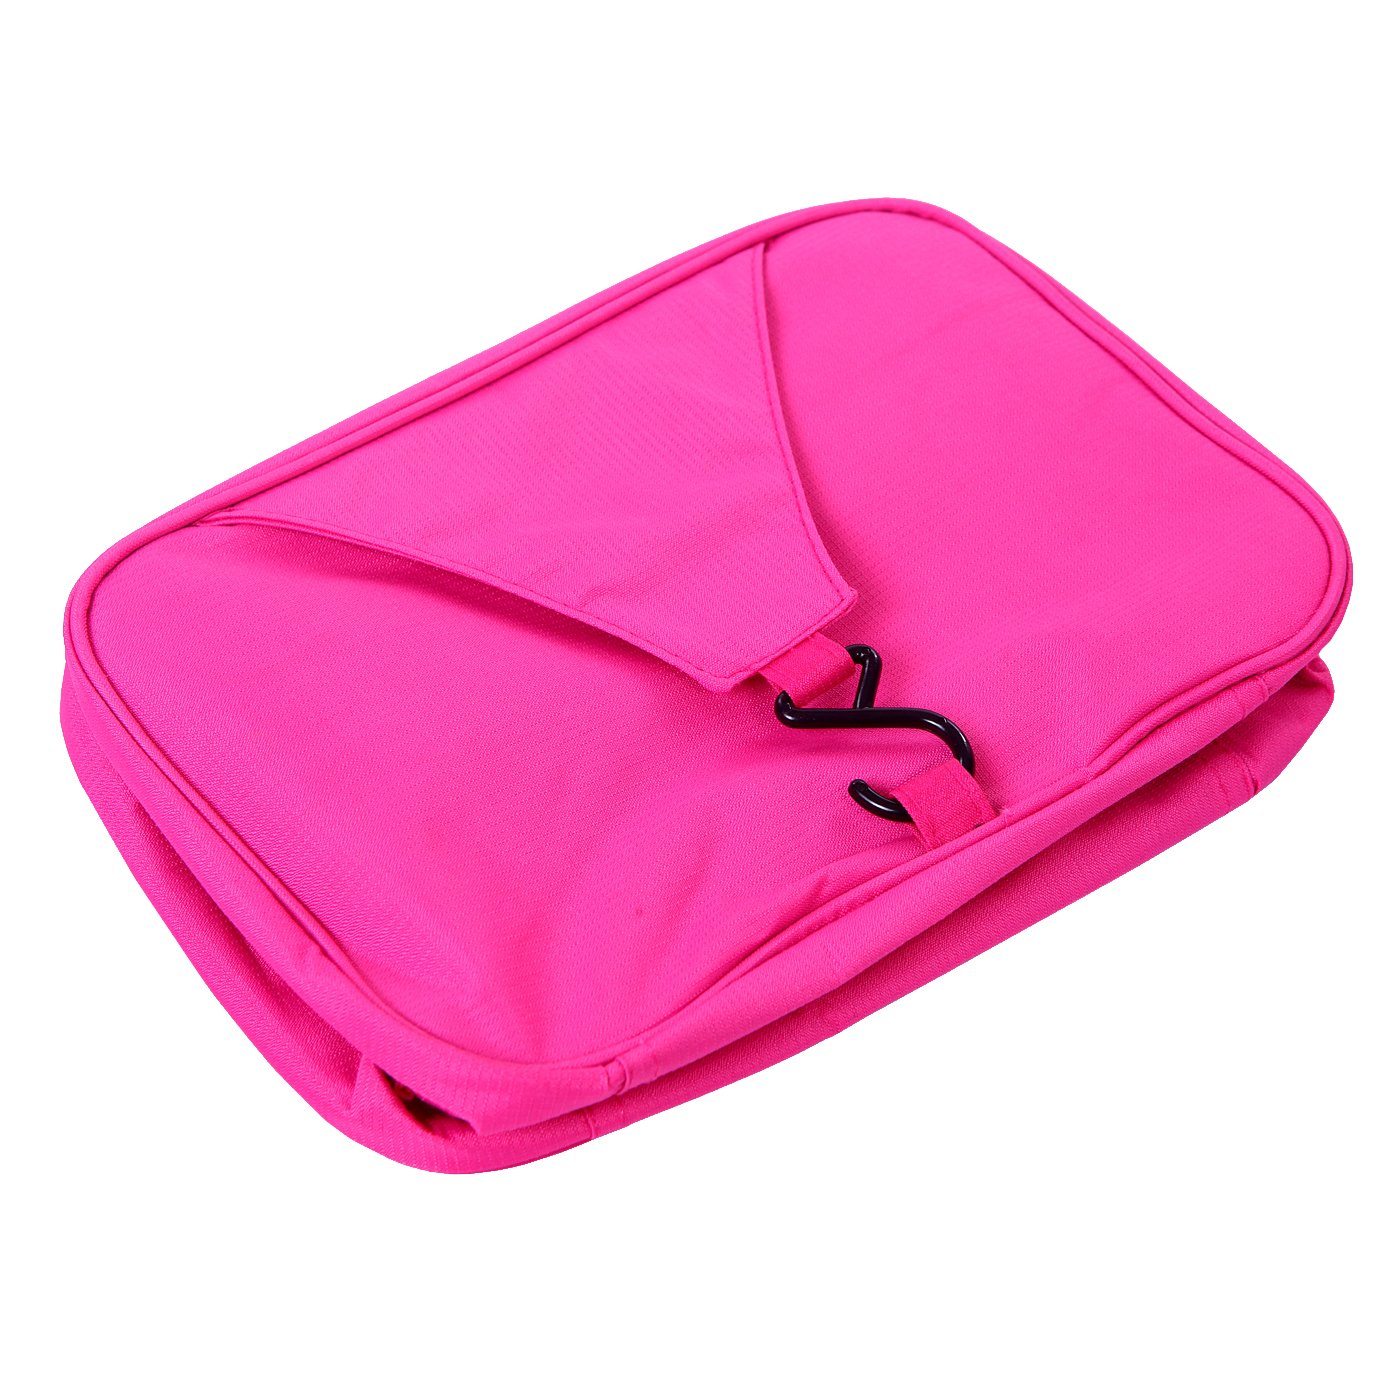 b02131fe19bc HDE Personal Travel Shower Organizer Hanging Toiletry Wash Bag Bathroom  Tote (Hot Pink)